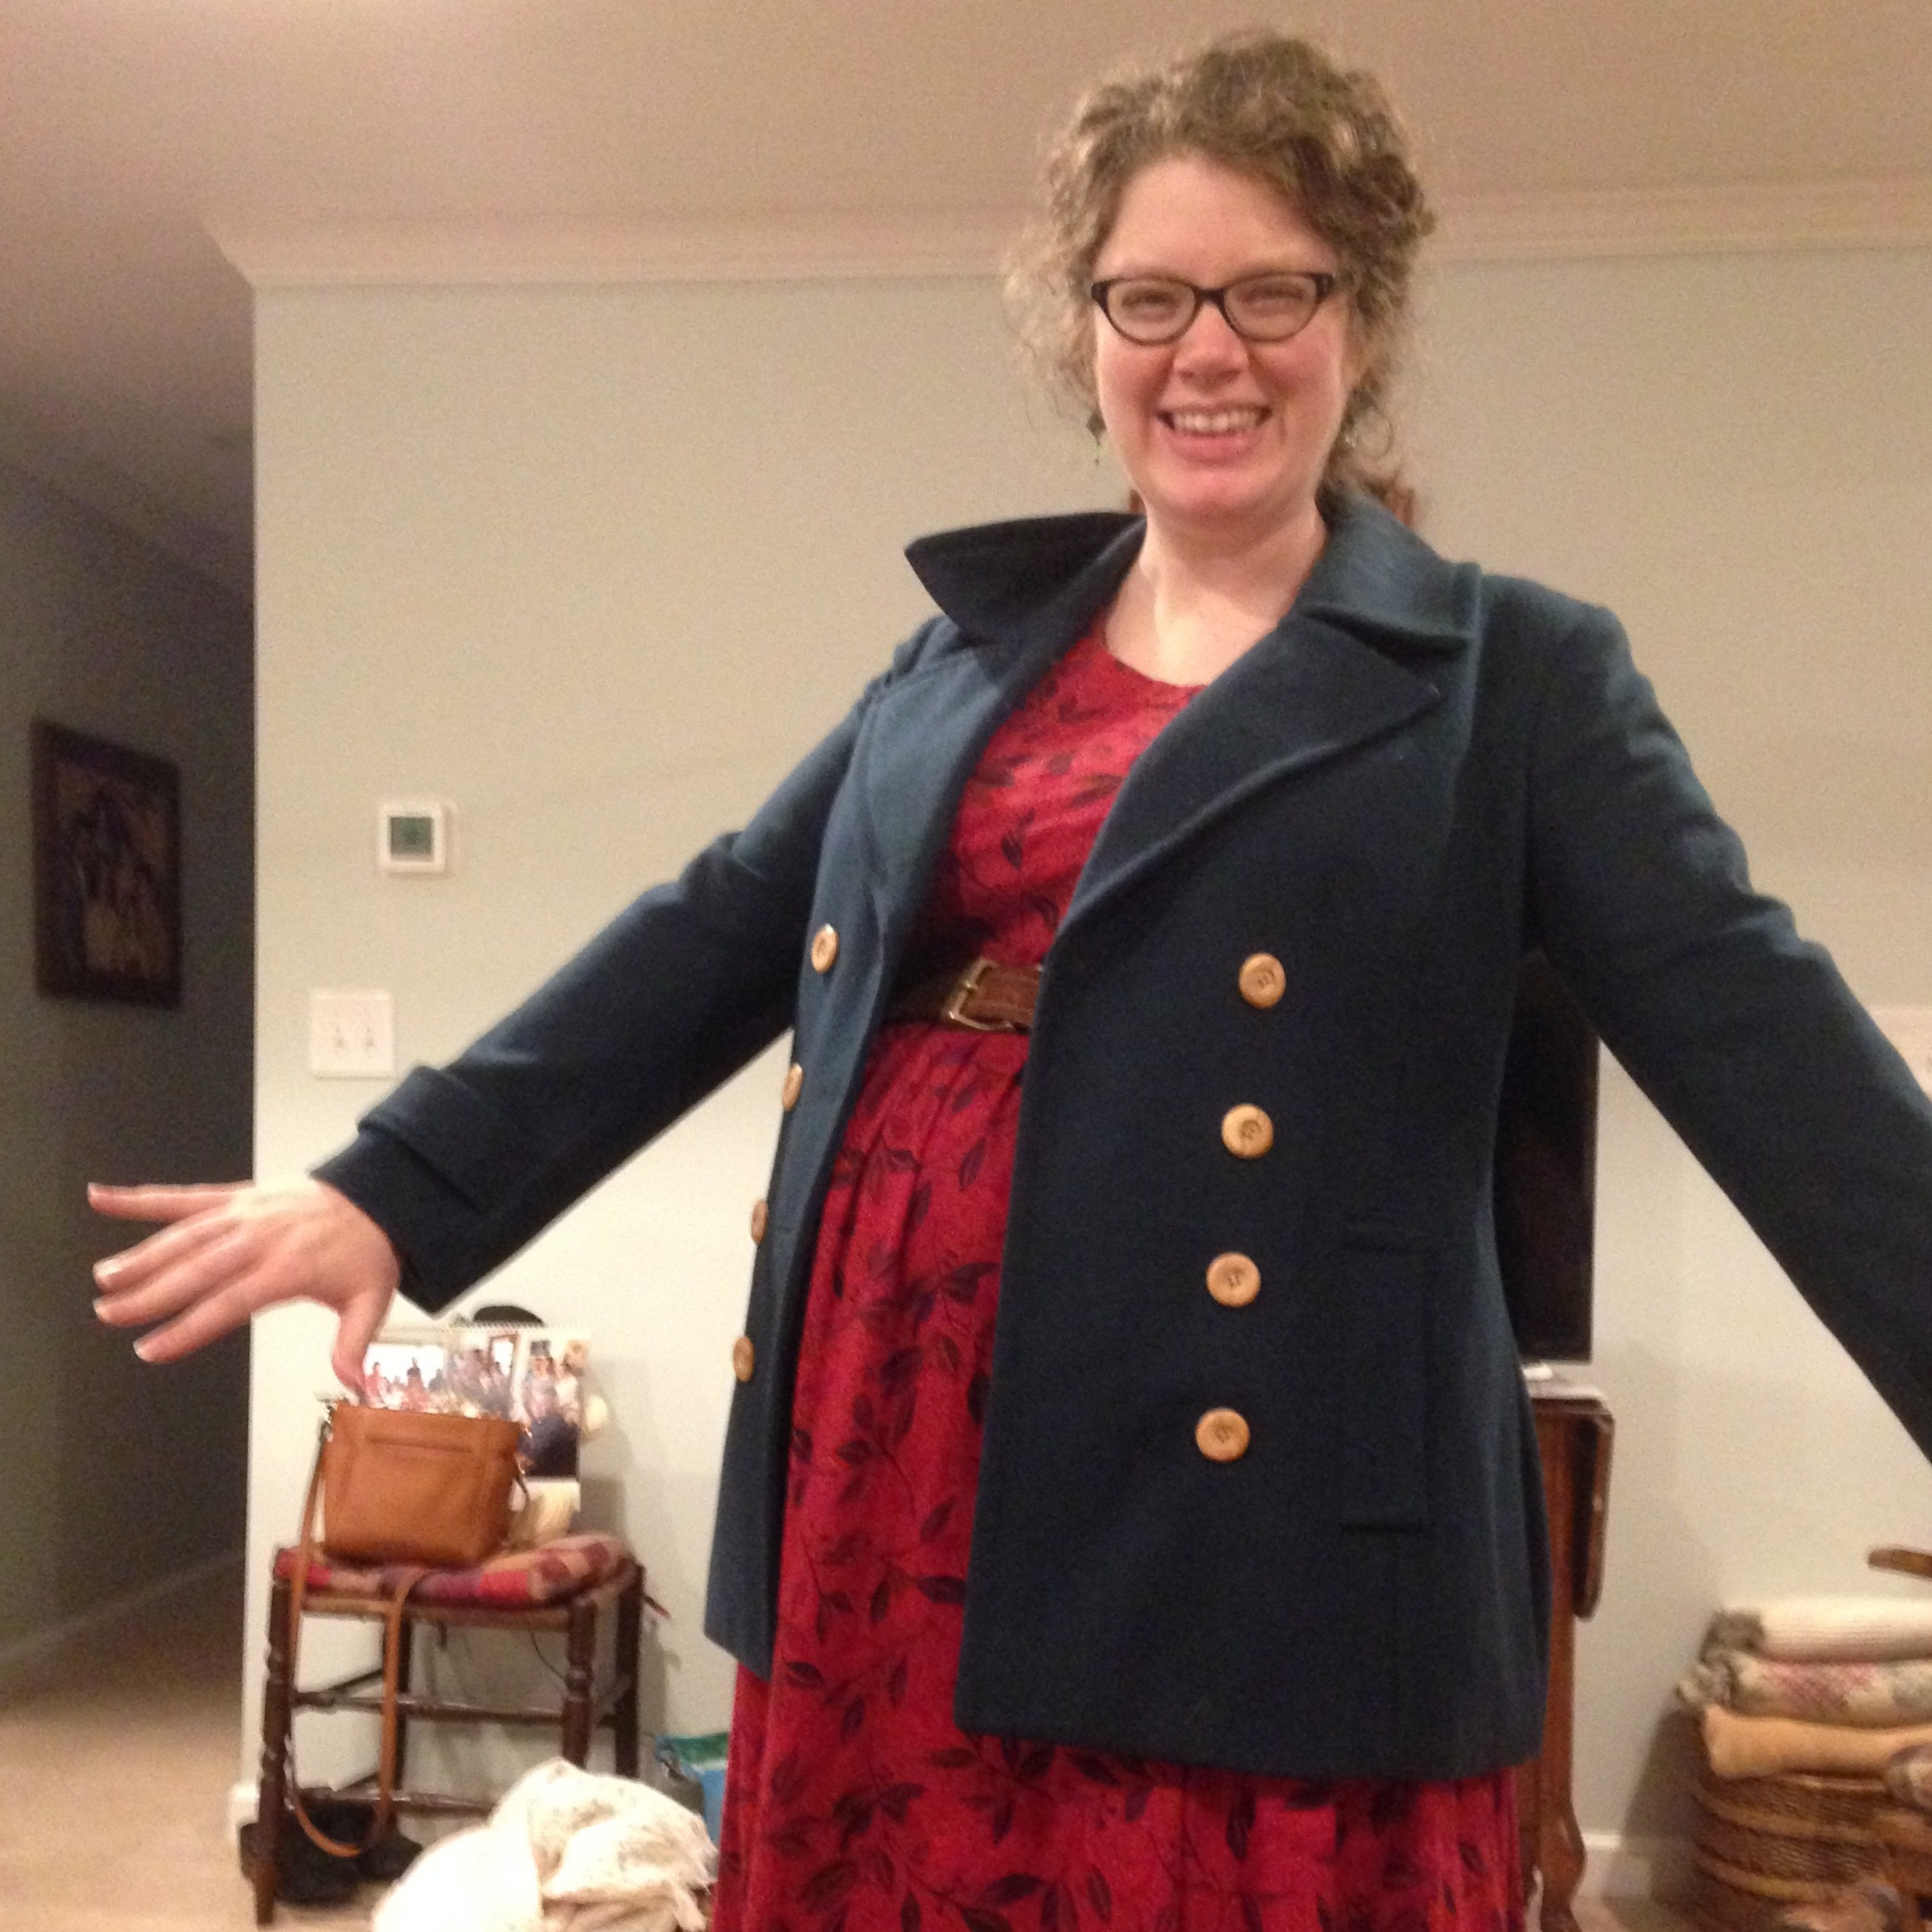 (Recent mending project: All the buttons kept falling off my coat—like, the first one fell off the first day I wore it! And I don't even USE the buttons! I installed new ones.)